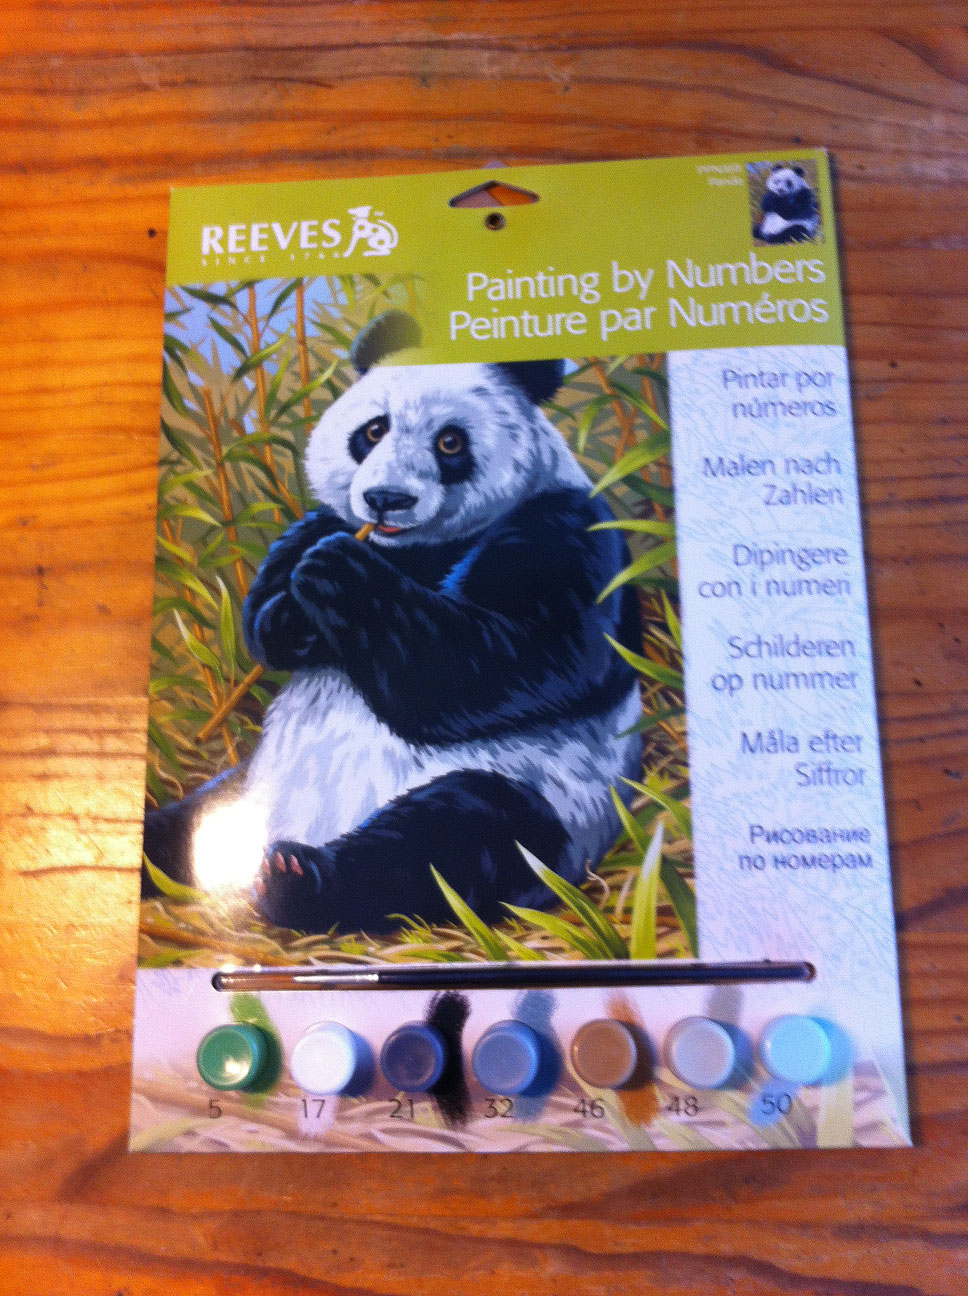 Paint by numbers kit of panda eating bamboo